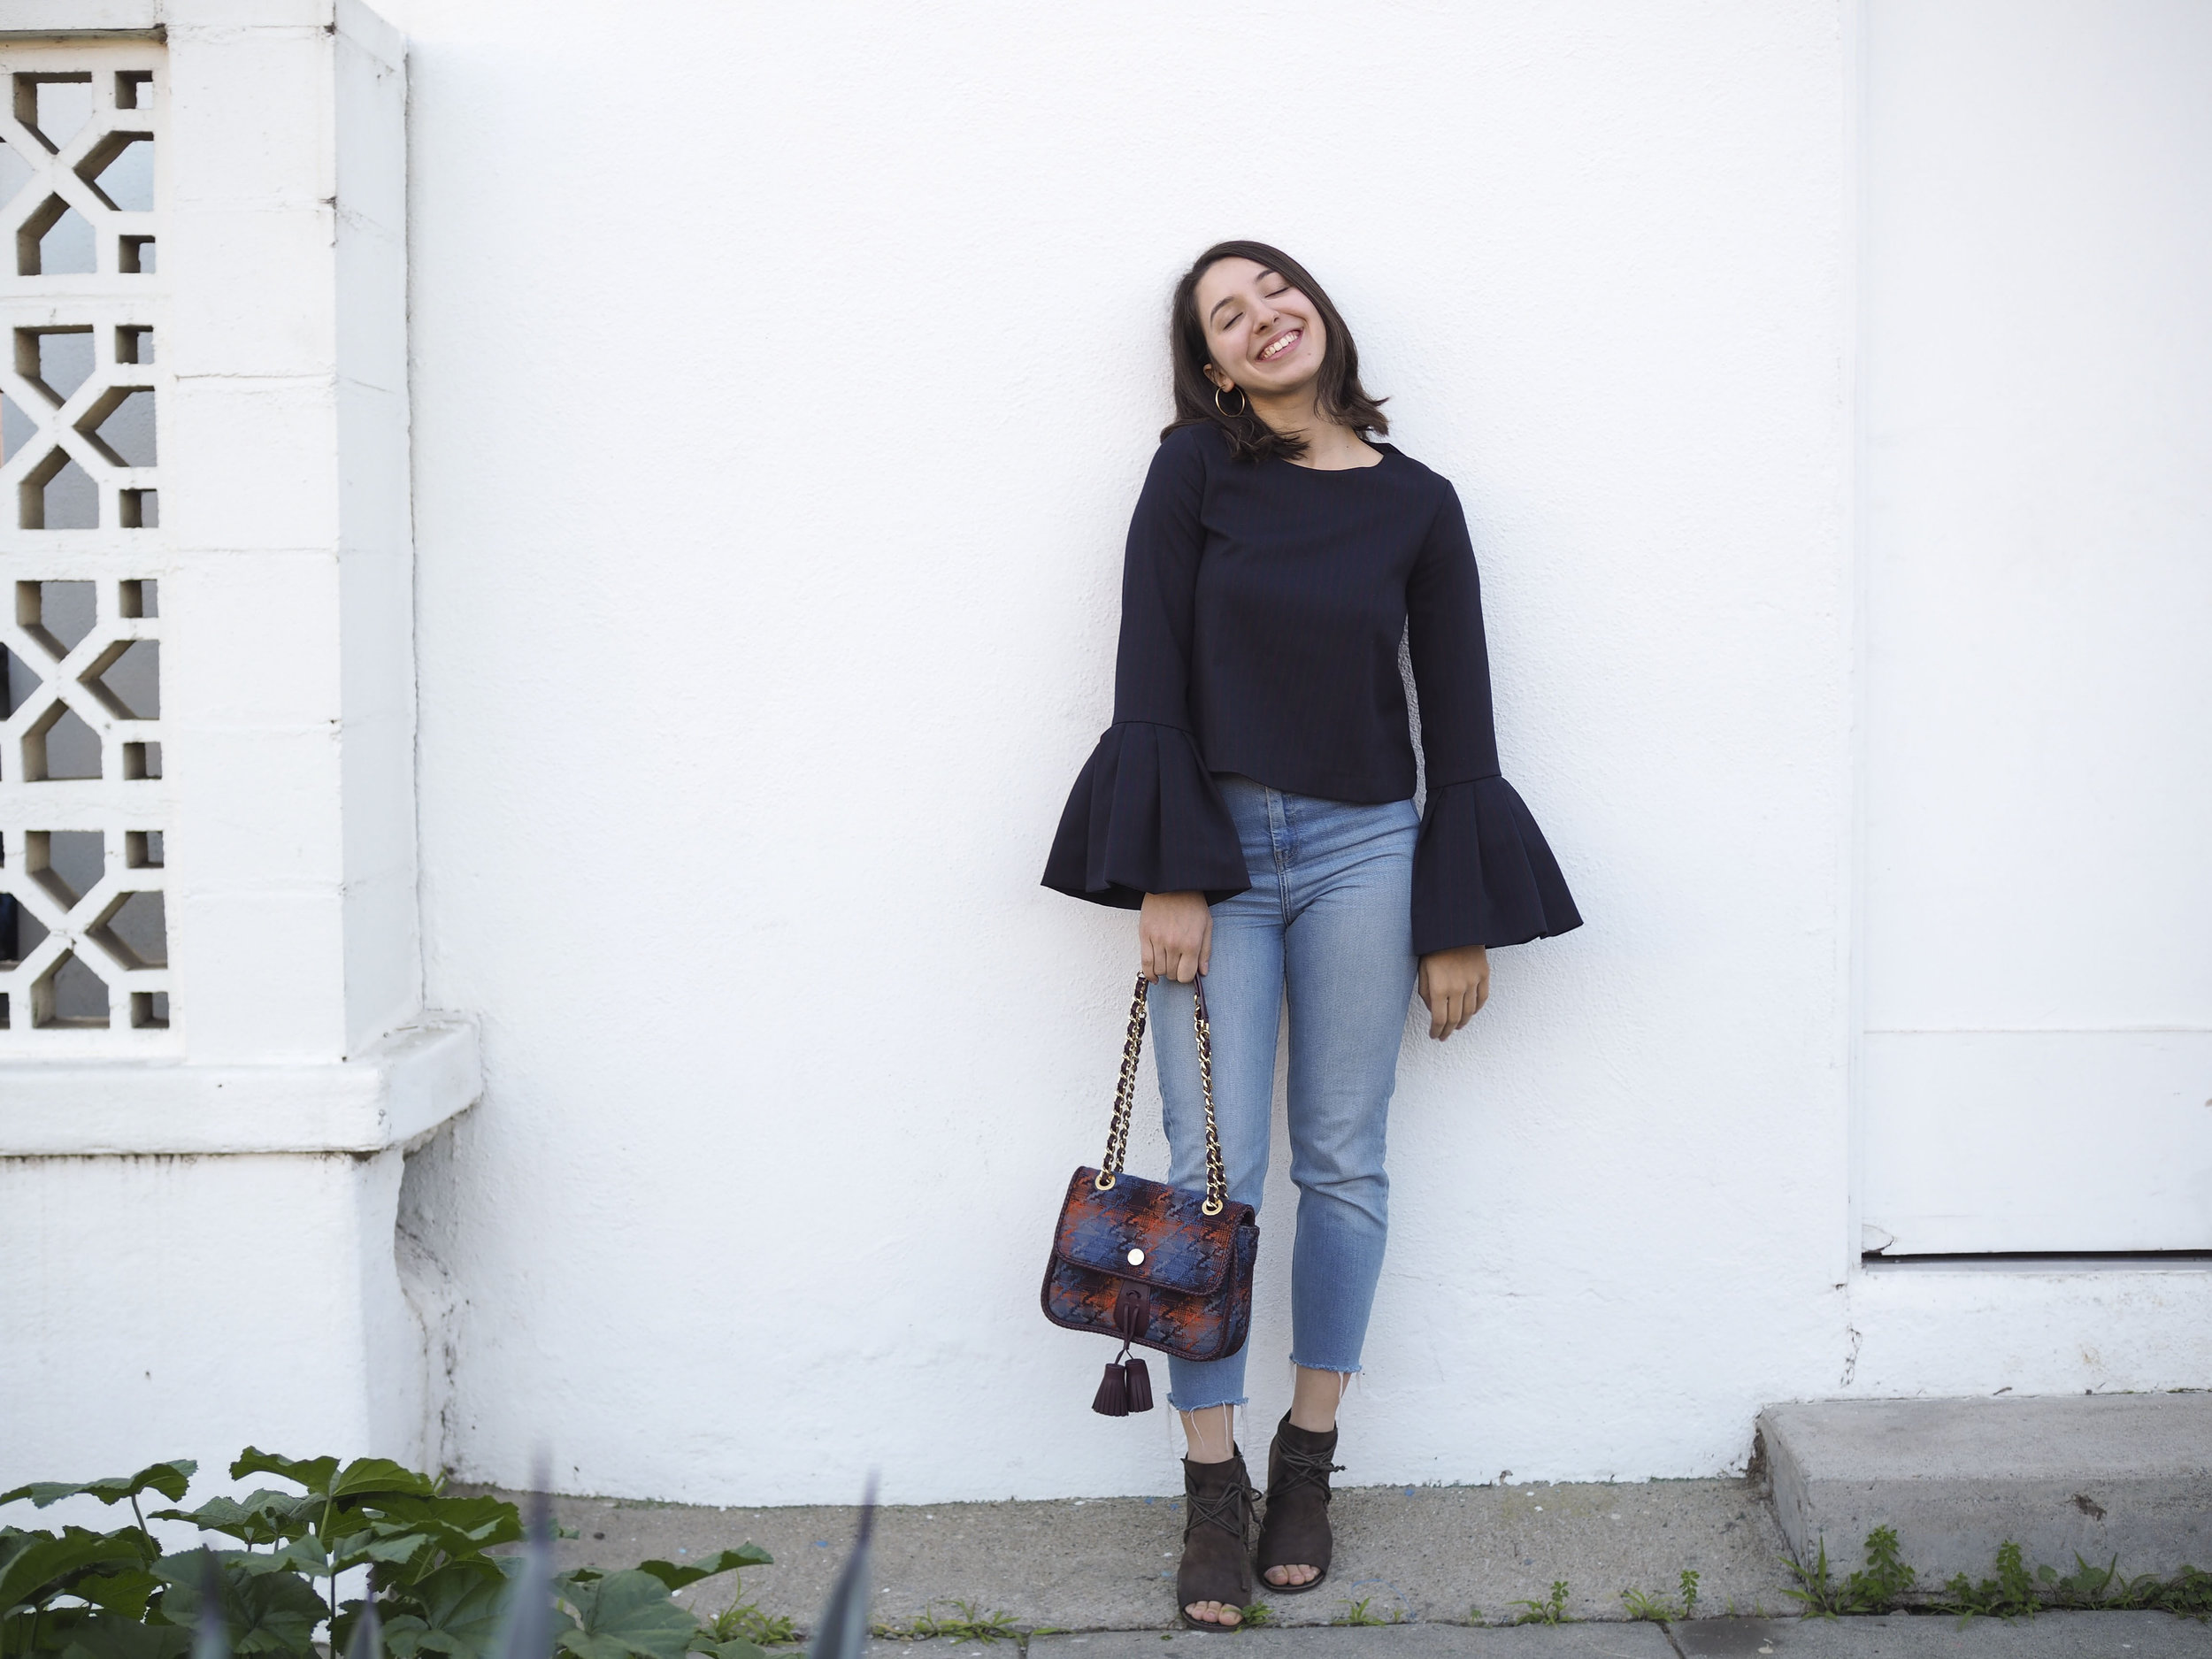 Zara Top, Top Shop Jeans, Vivienne Westwood Purse, Marsèll Shoes and Unknown Earrings.